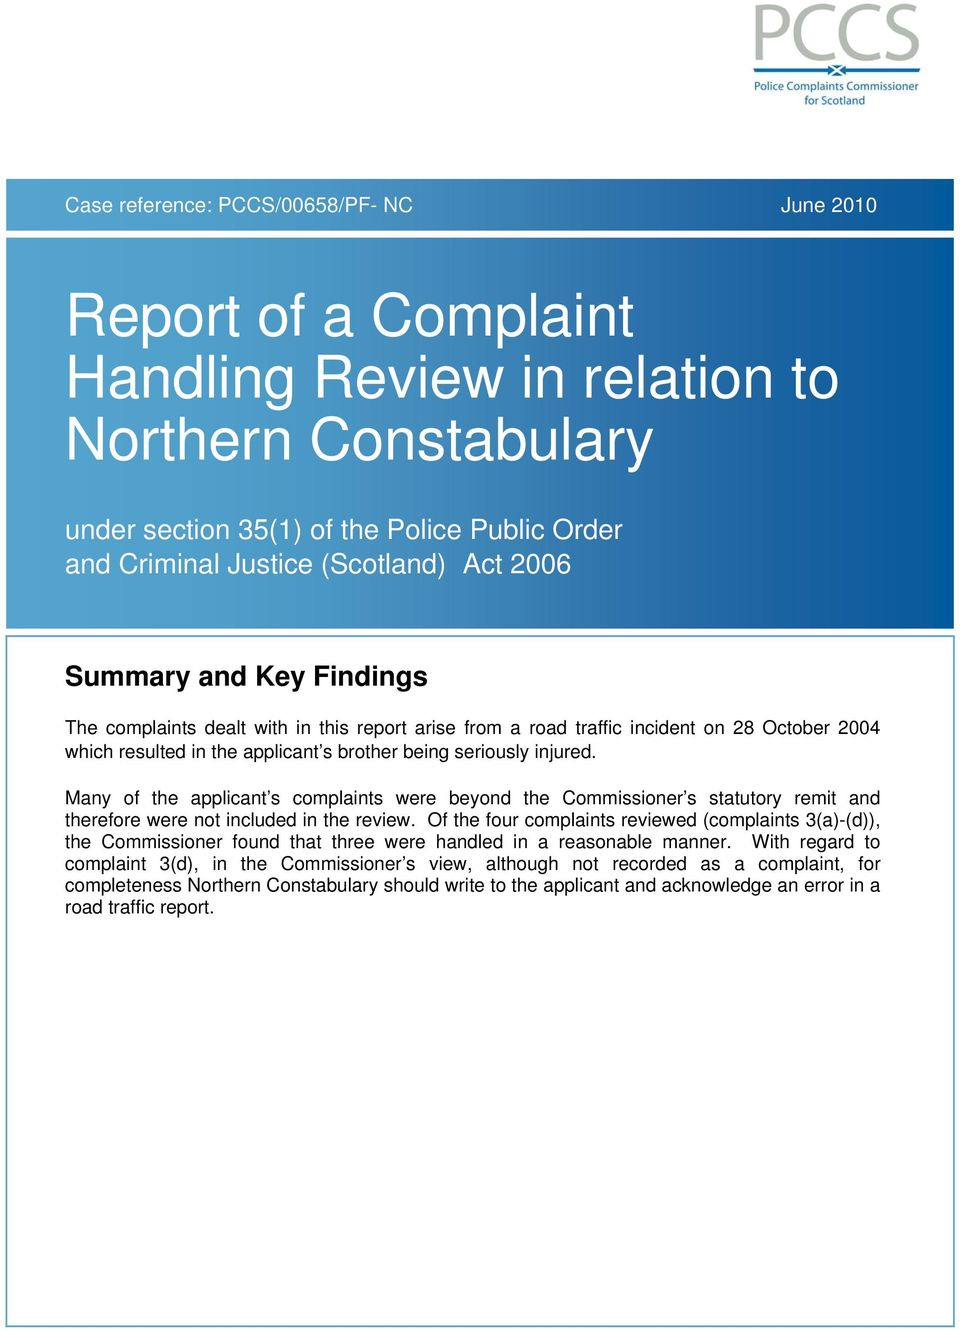 Many of the applicant s complaints were beyond the Commissioner s statutory remit and therefore were not included in the review.